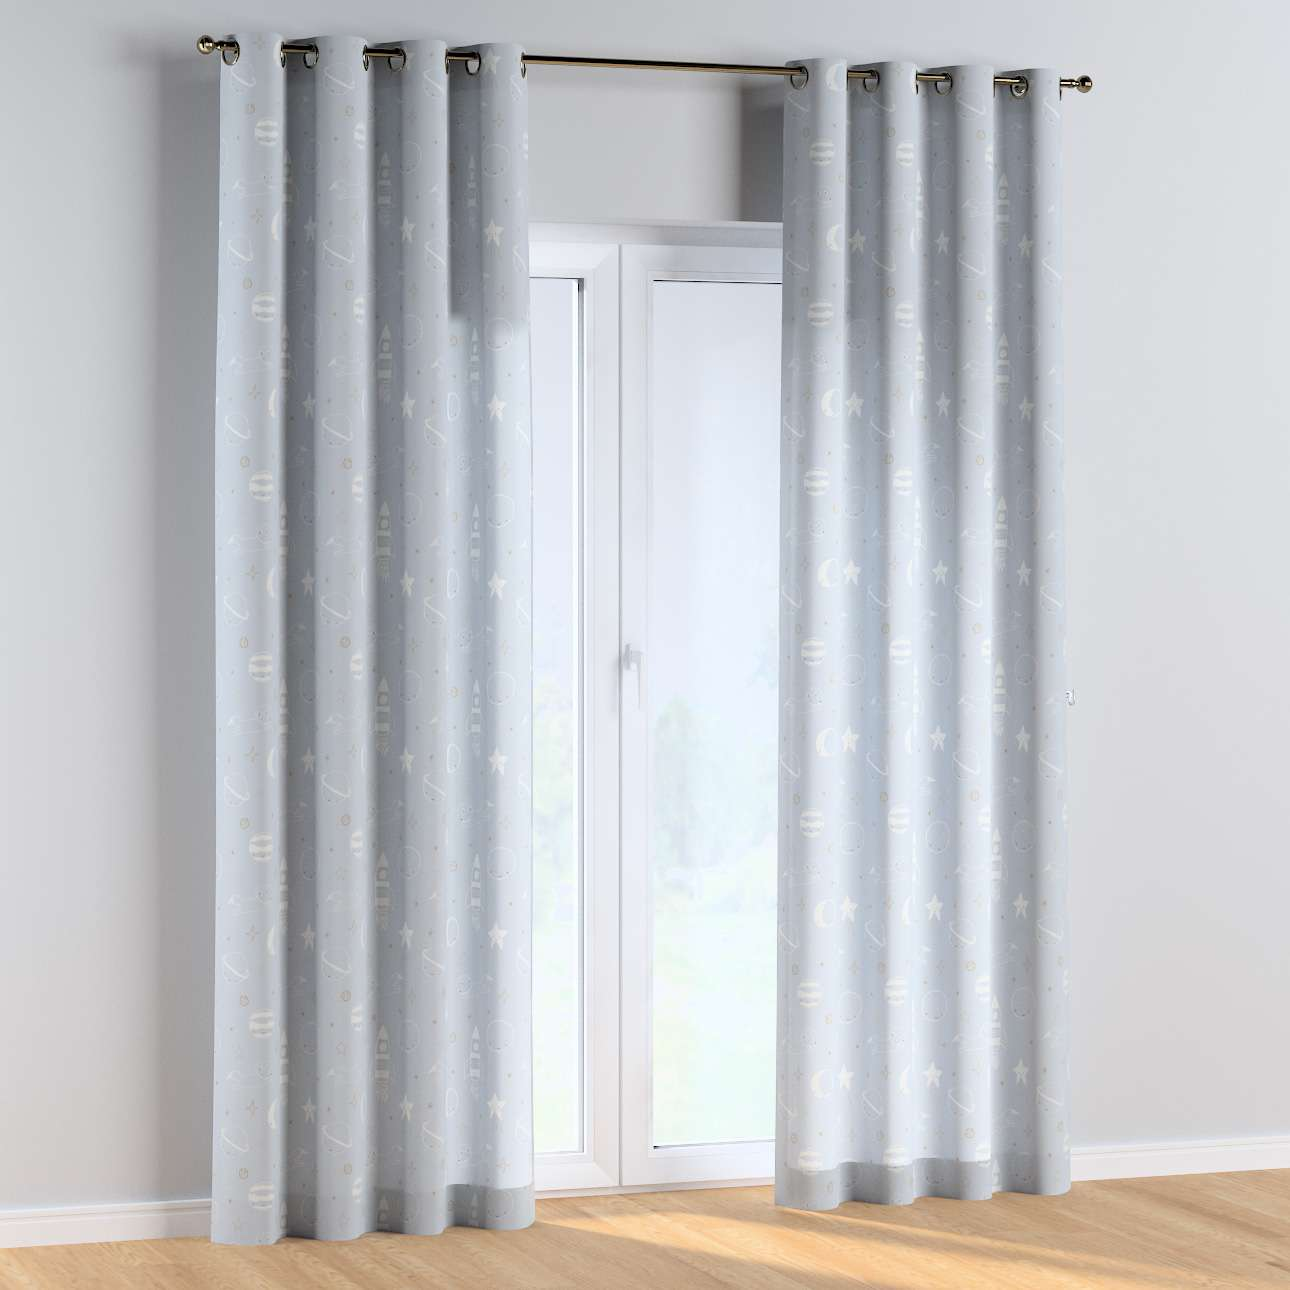 Eyelet curtains in collection Magic Collection, fabric: 500-16